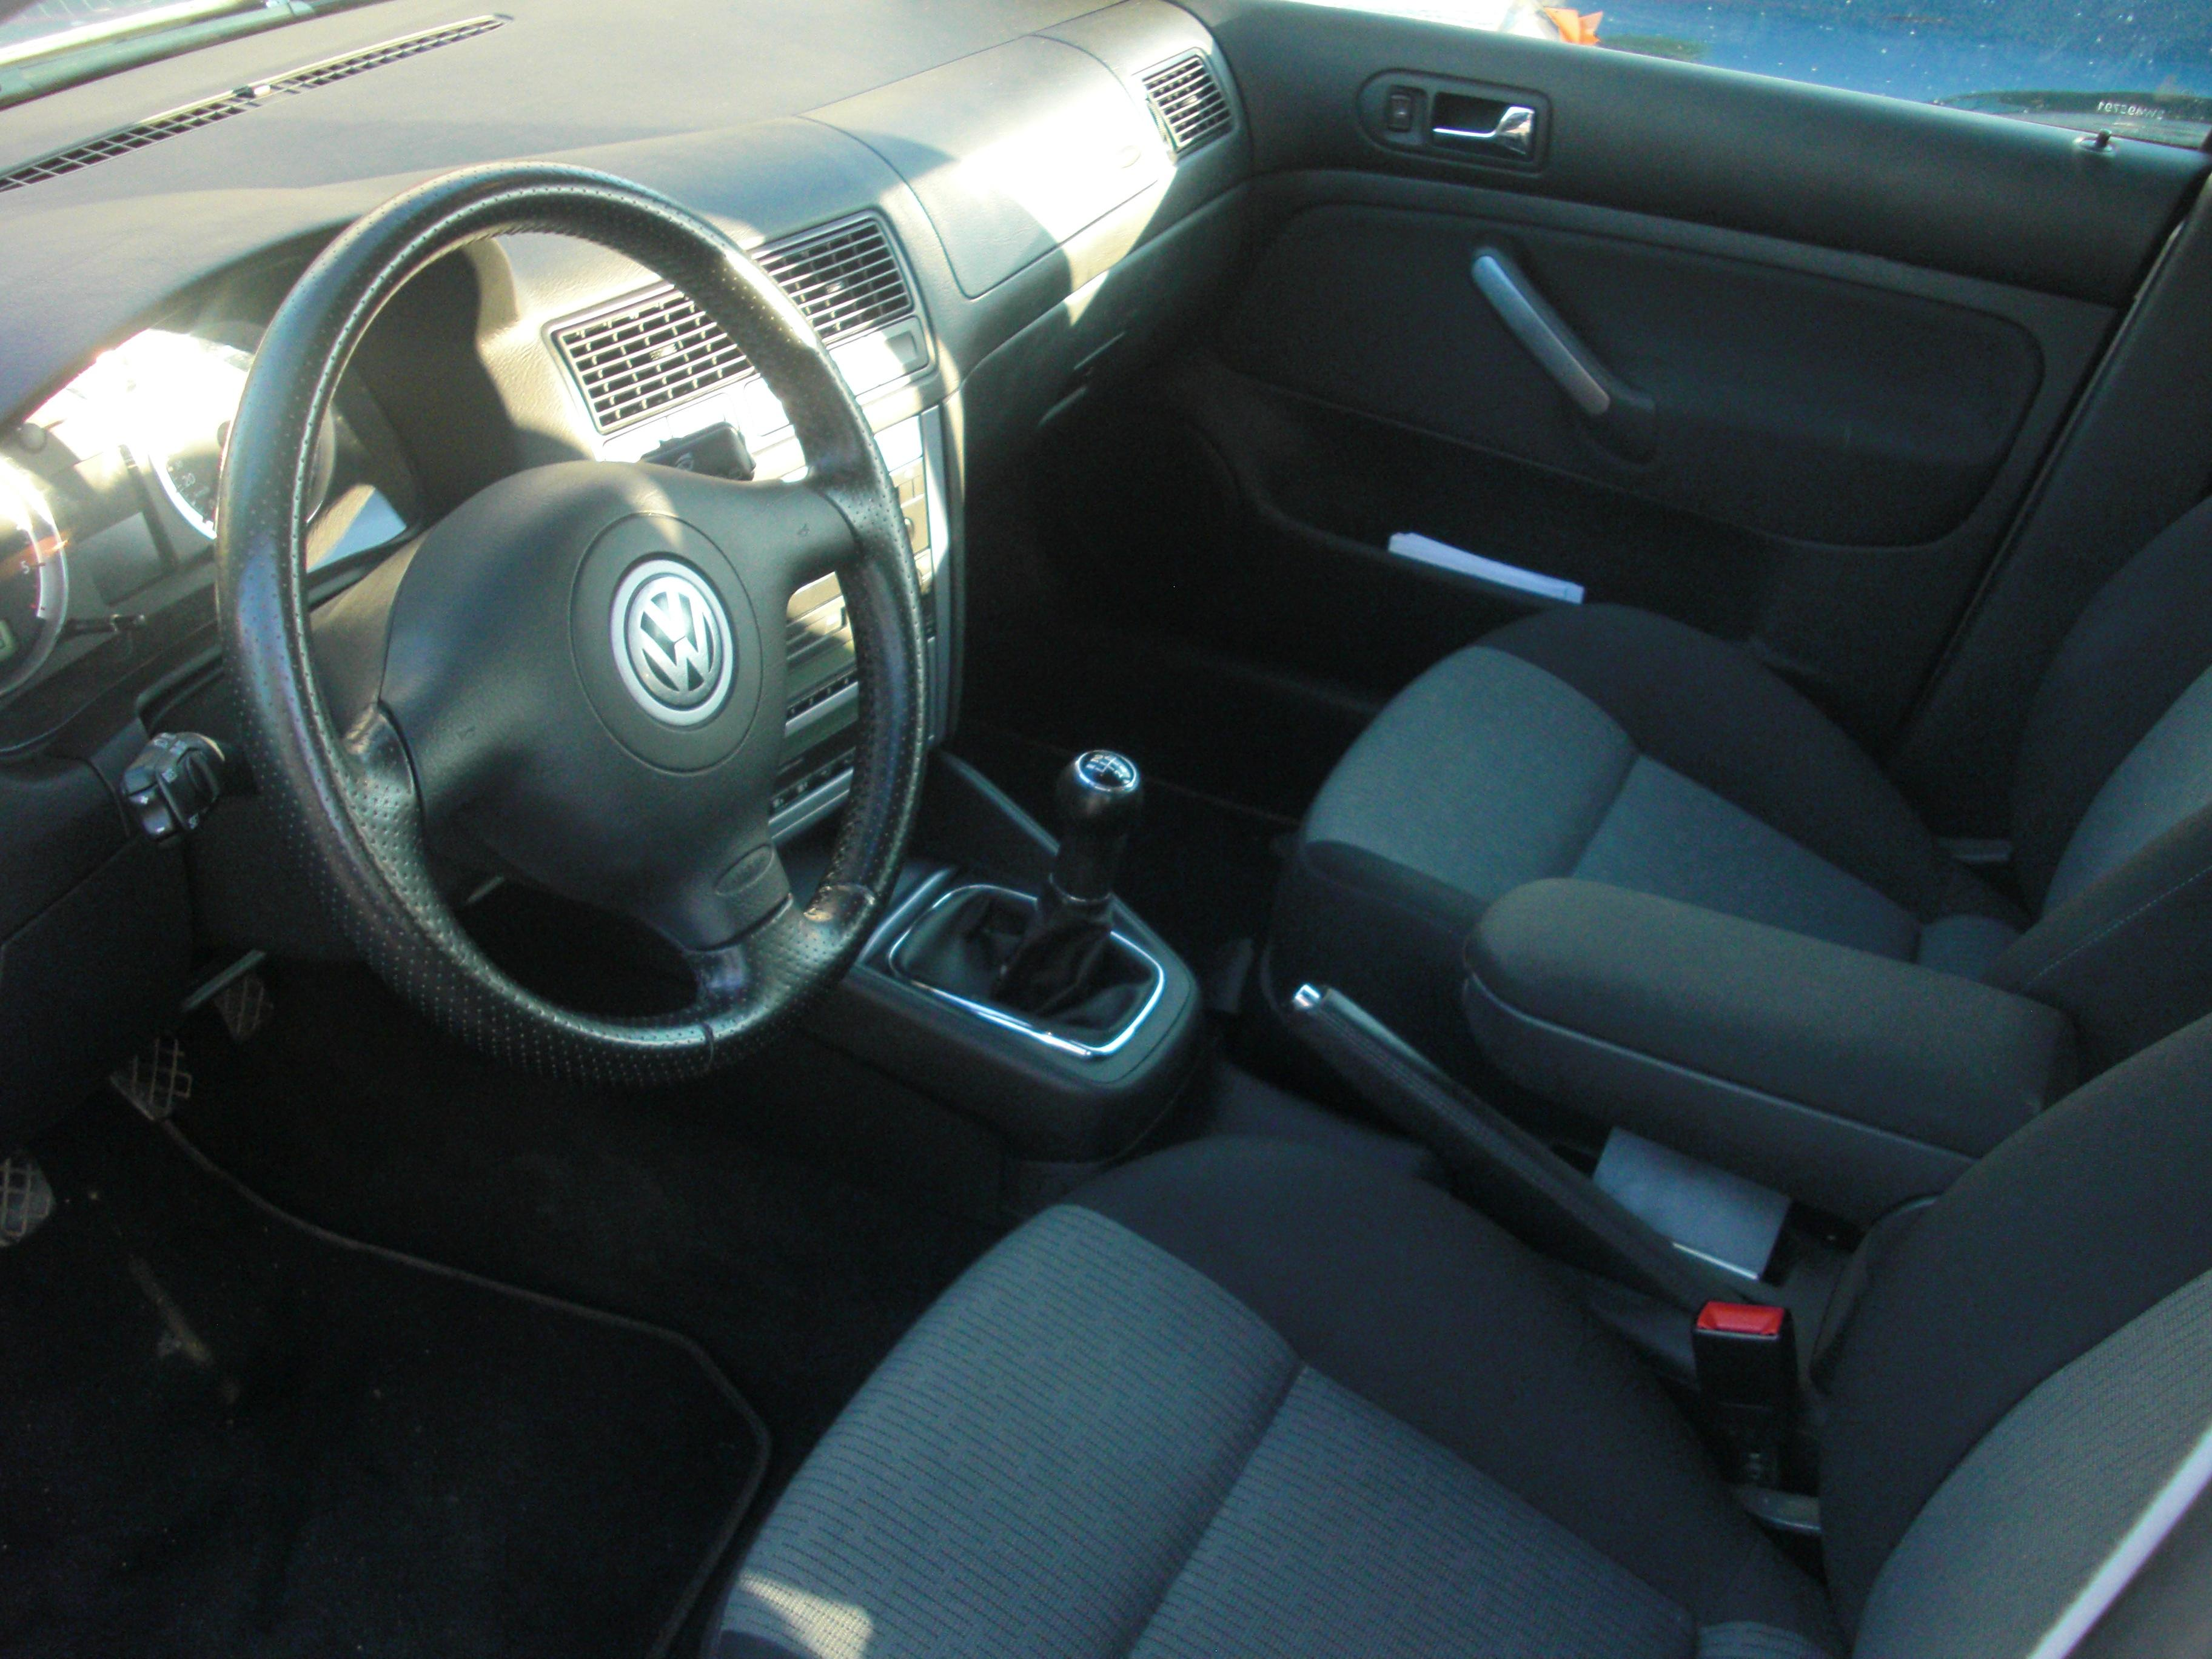 golf iv tdi 100 match ii xenon r32 oem photos bientot garage des golf iv tdi 100 forum. Black Bedroom Furniture Sets. Home Design Ideas